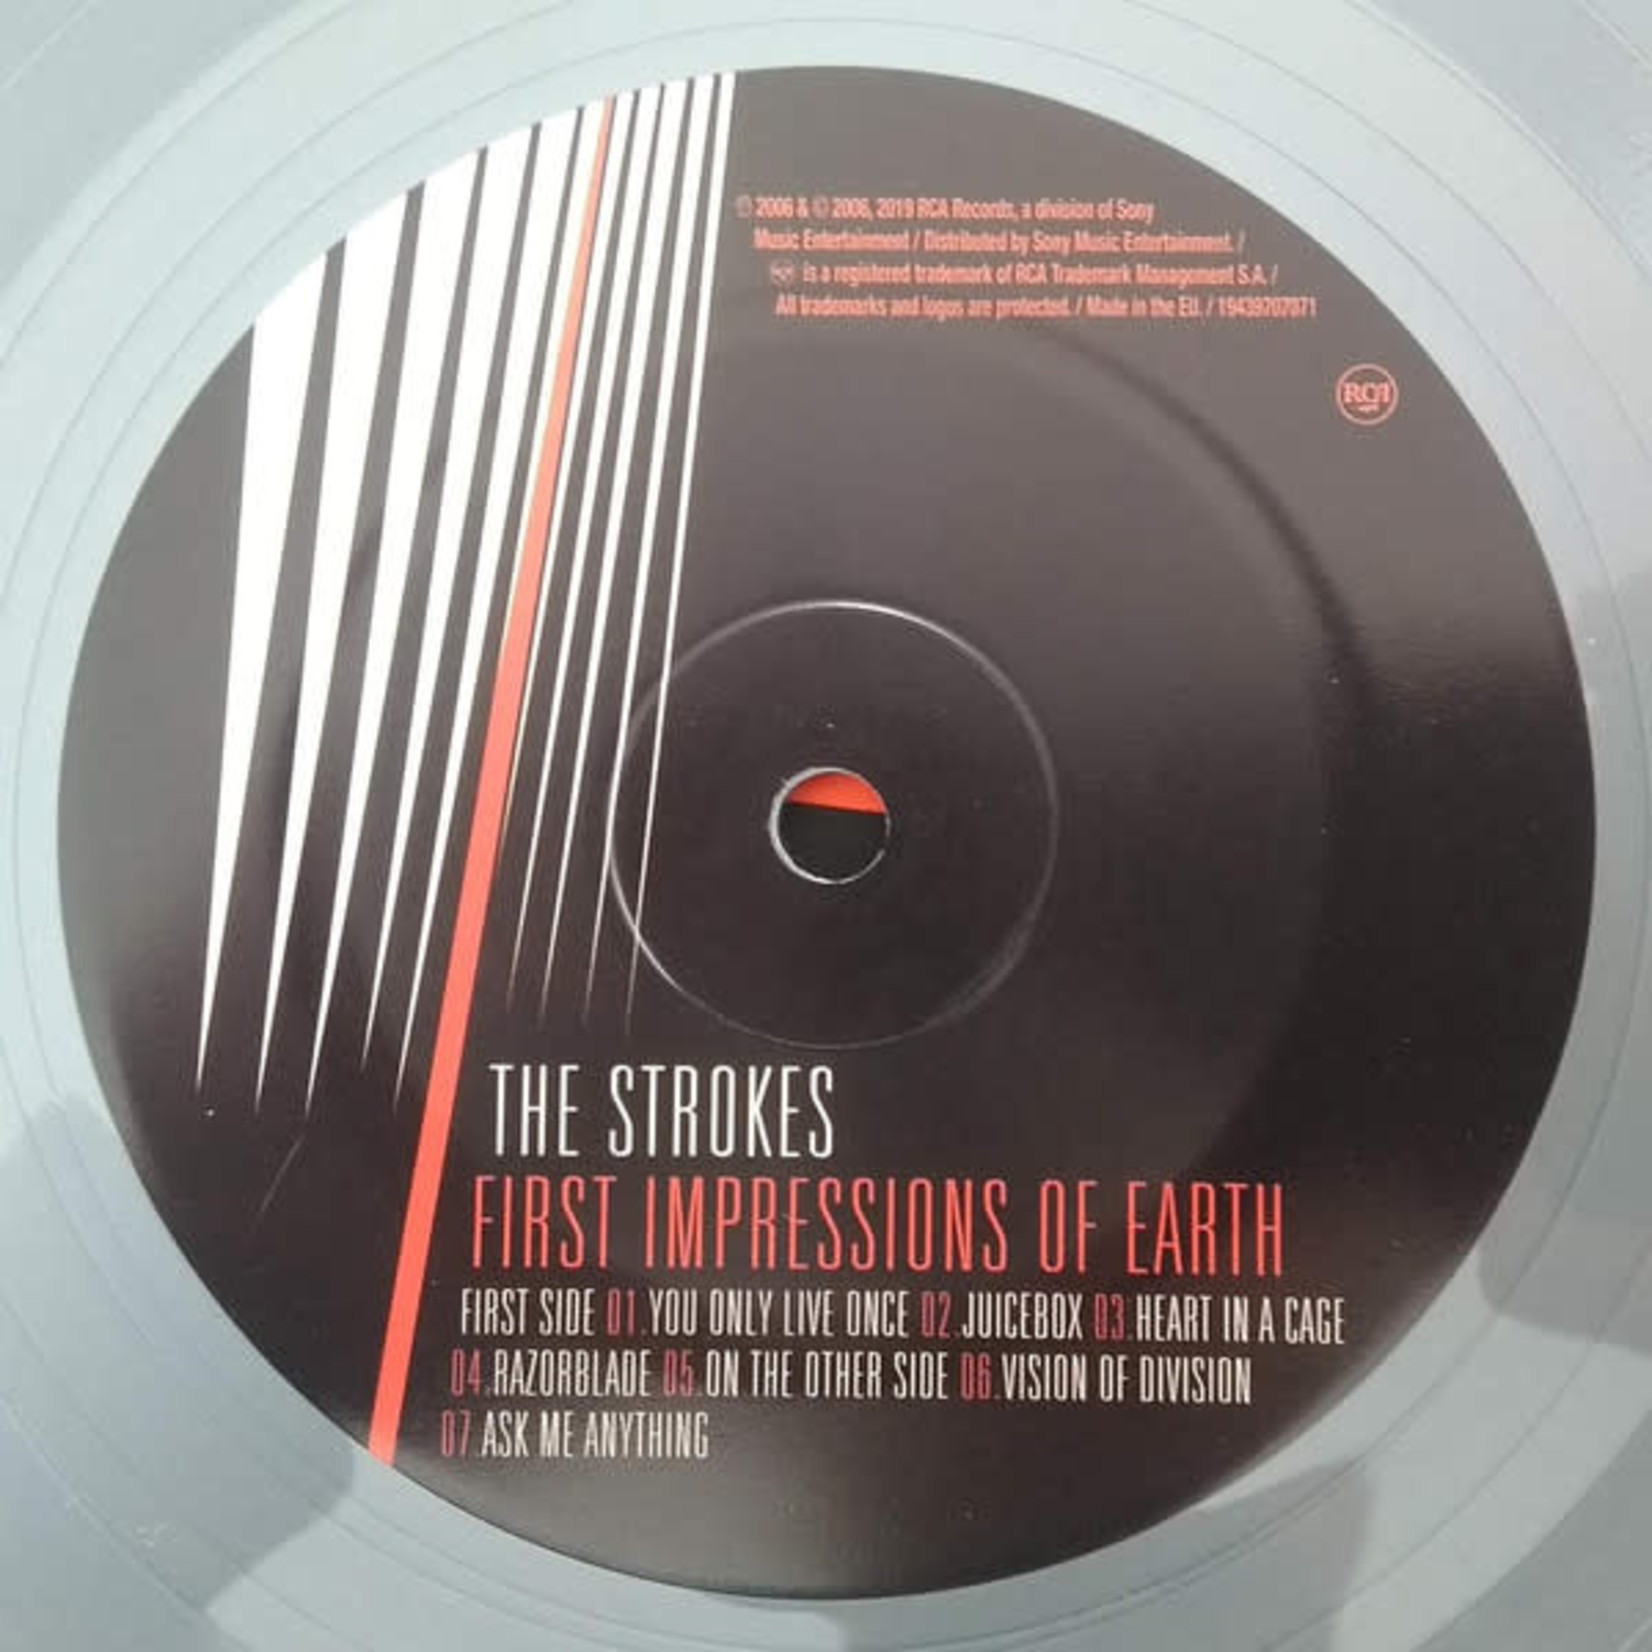 THE STROKES FIRST IMPRESSIONS OF EARTH  SILVER VINYL